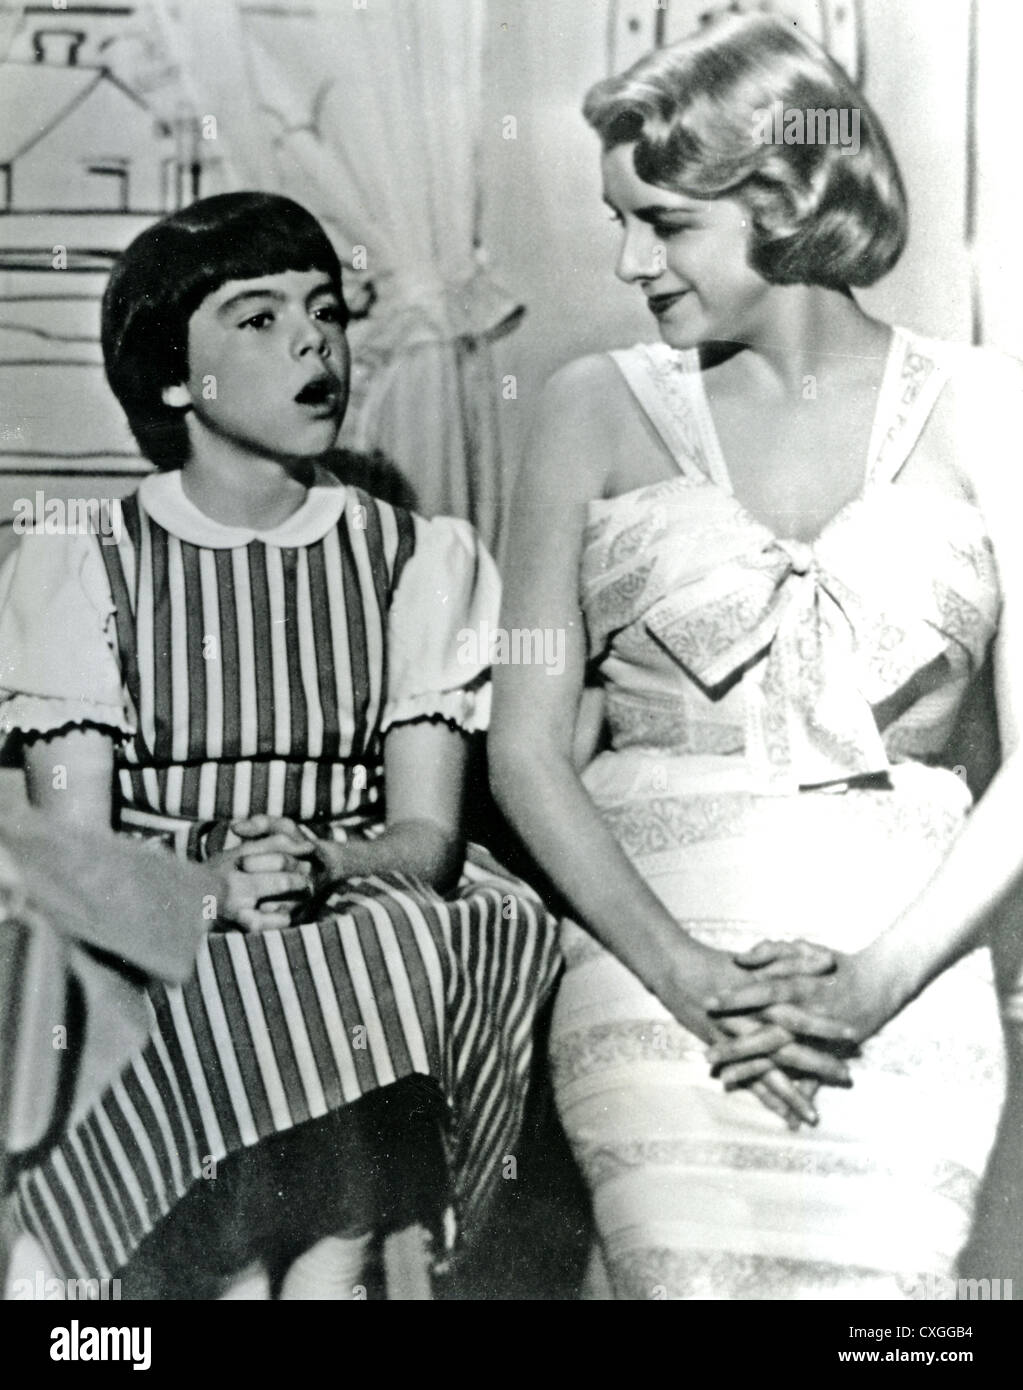 ROSEMARY CLOONEY (1928-2002) US singer on her US TV show with sister Gayle  about 1956 - Stock Image